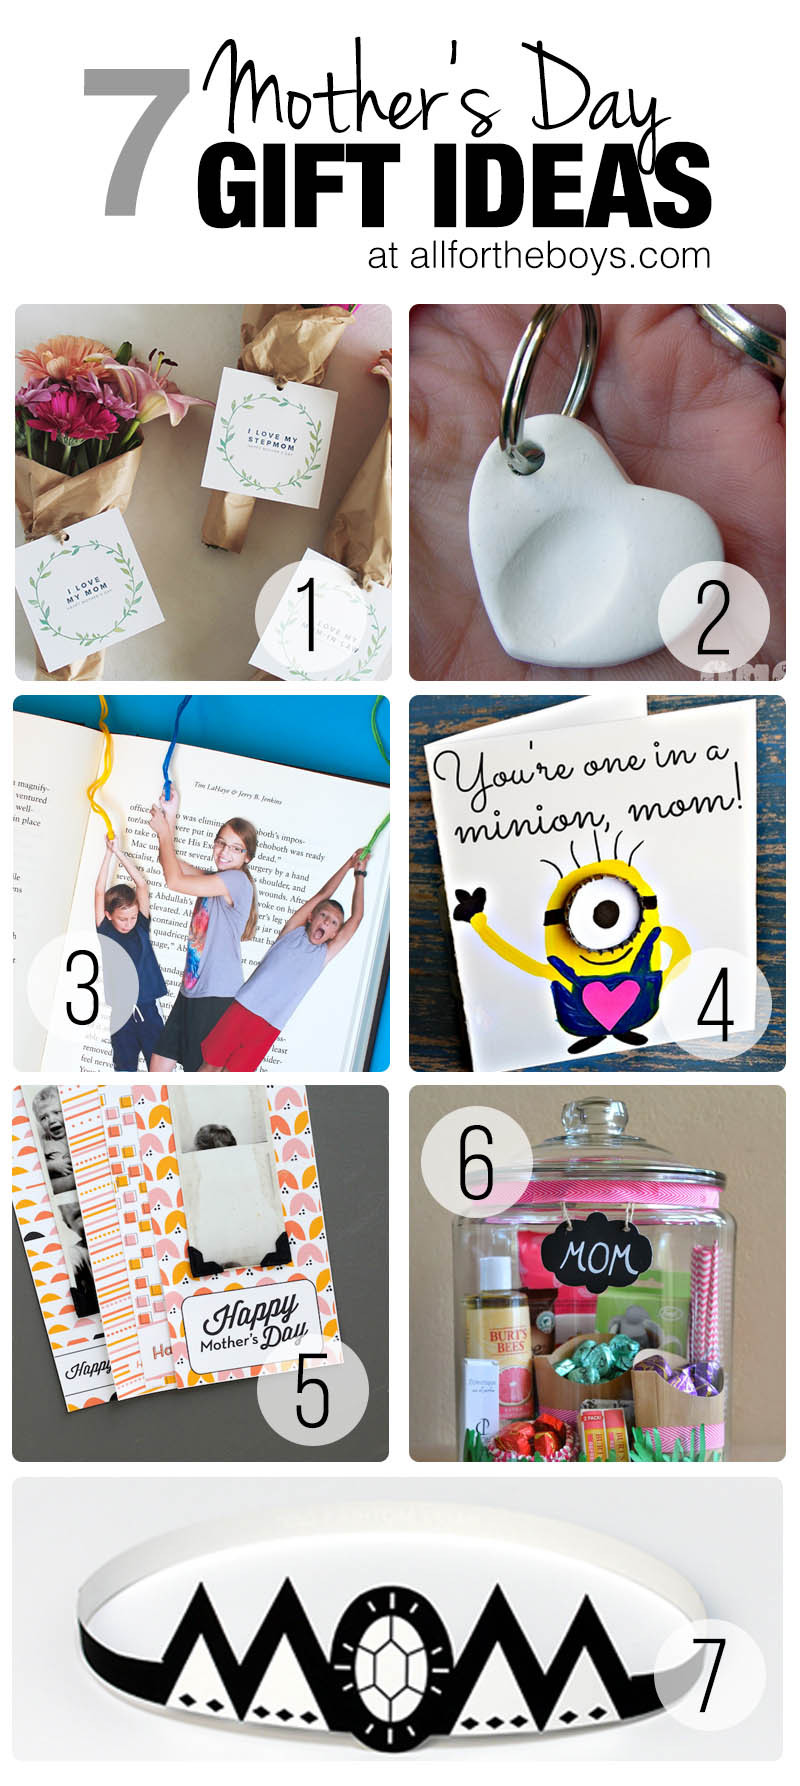 Best ideas about Gift Ideas For Toddler Boys . Save or Pin 7 Mother s Day Gift Ideas for Kids — All for the Boys Now.